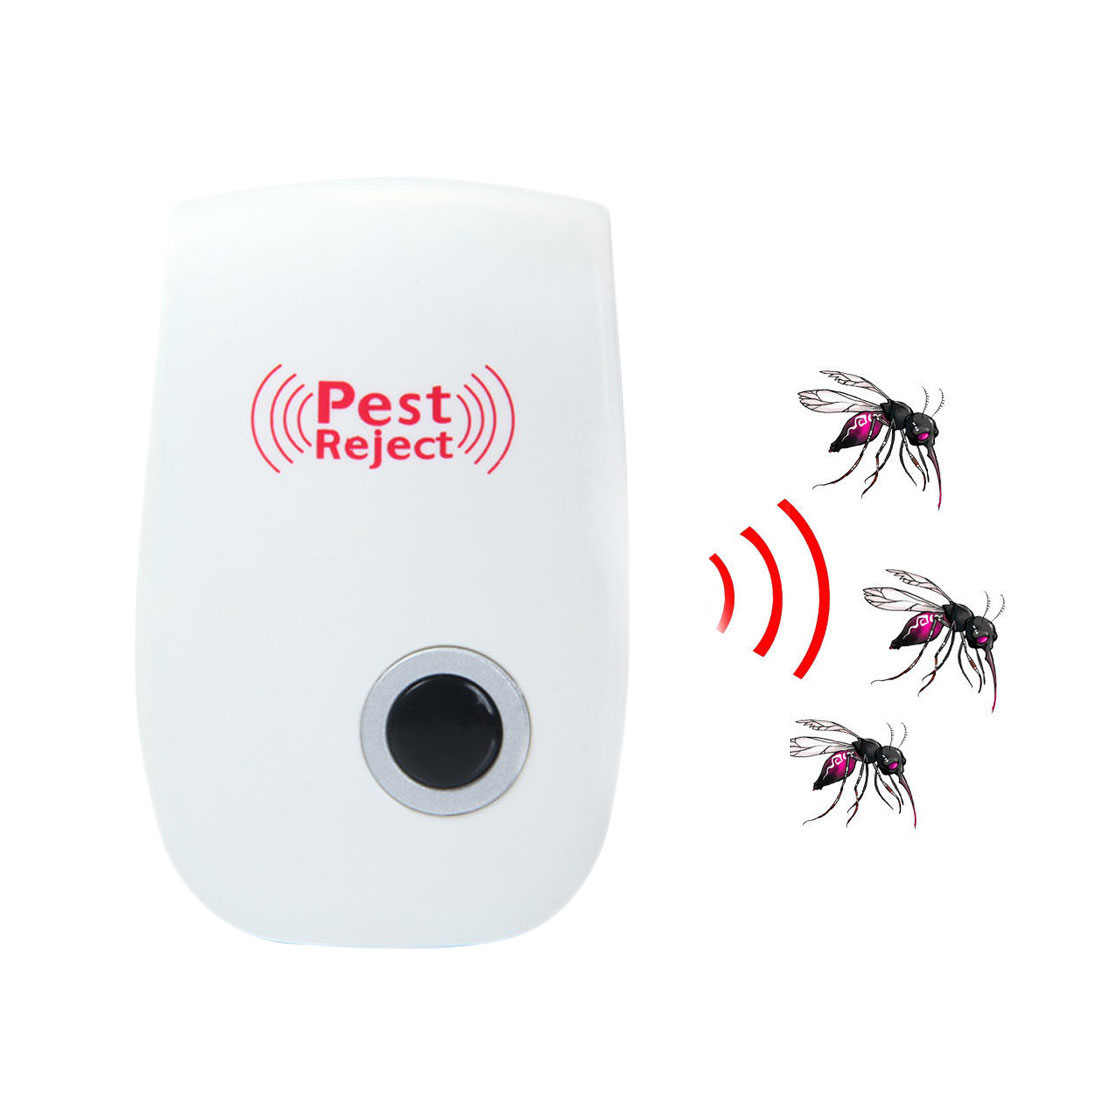 Mosquito Killer Electronic Multi-Purpose Ultrasonic Pest Repeller Reject Rat Mouse Repel ...